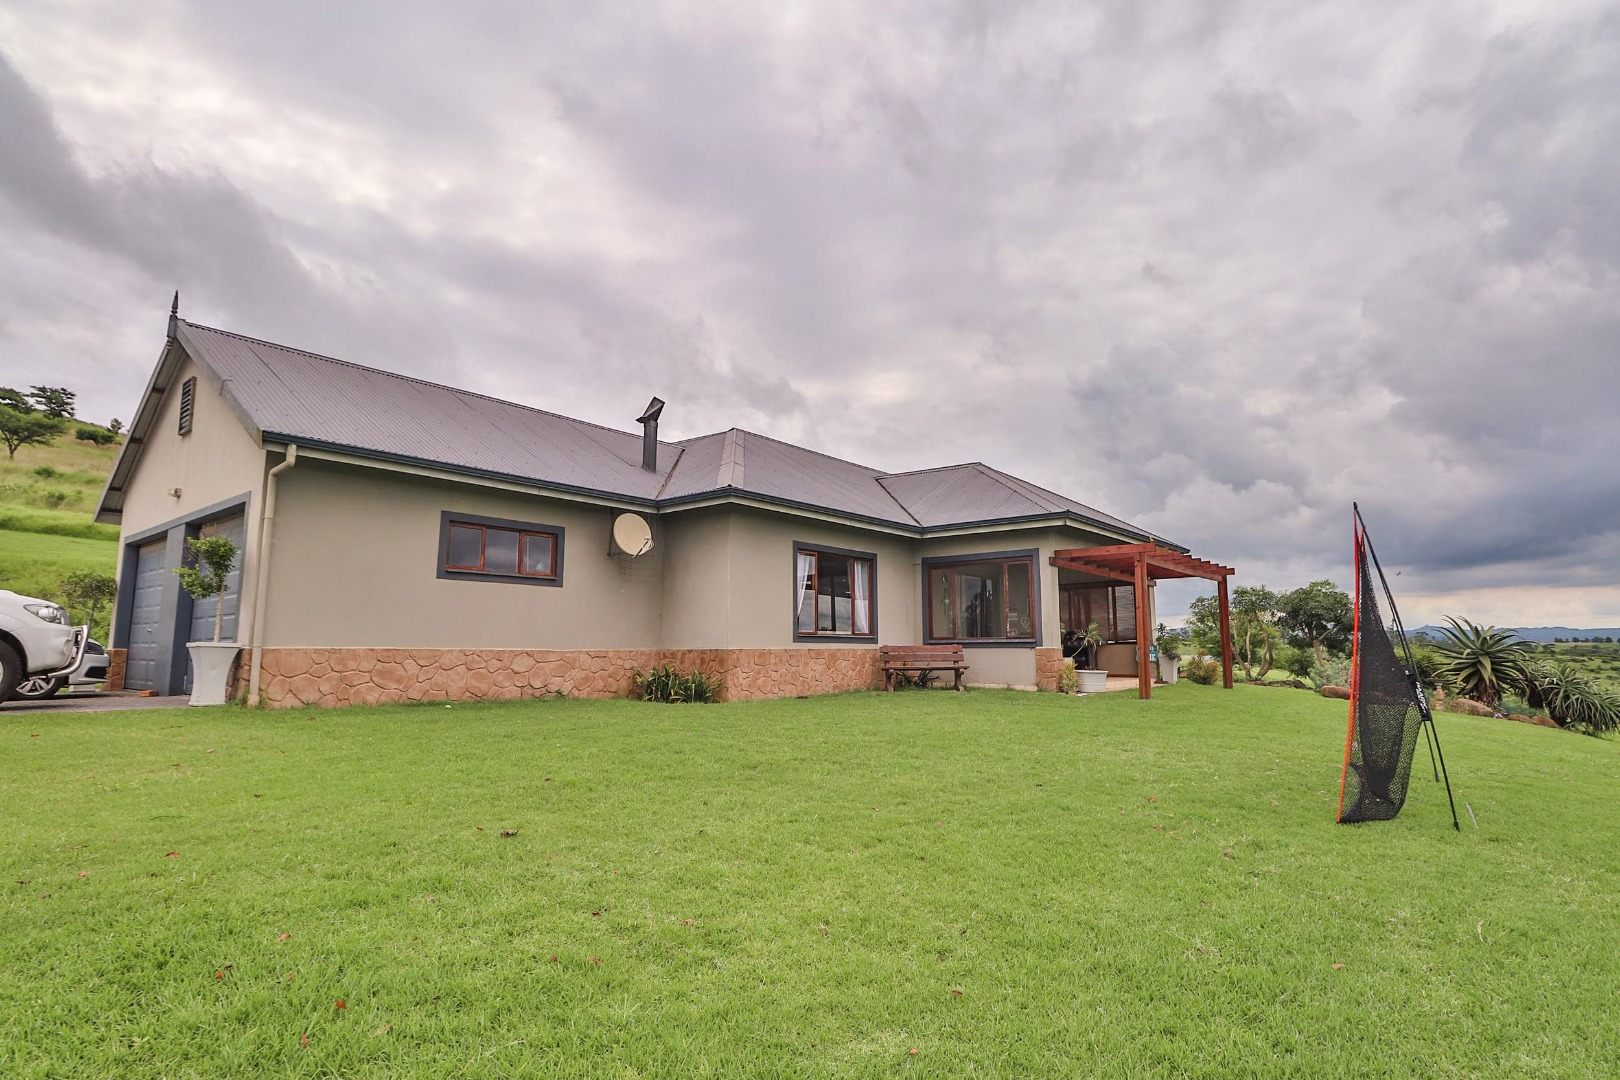 3 Bedroom House For Sale in Intaba Ridge Secure Eco Estate